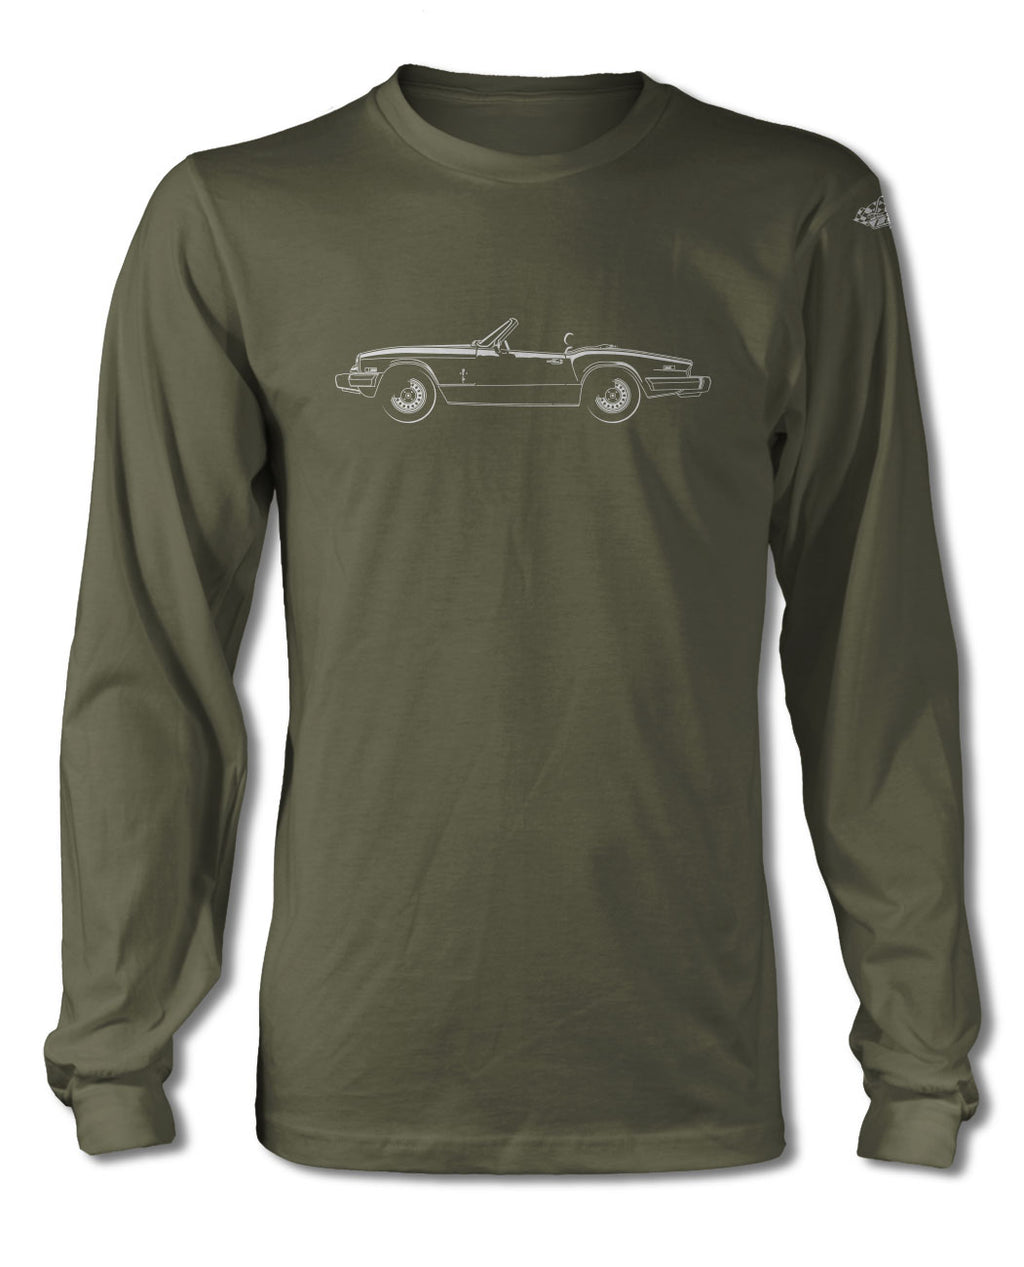 Triumph Spitfire 1500 S2 Convertible T-Shirt - Long Sleeves - Side View